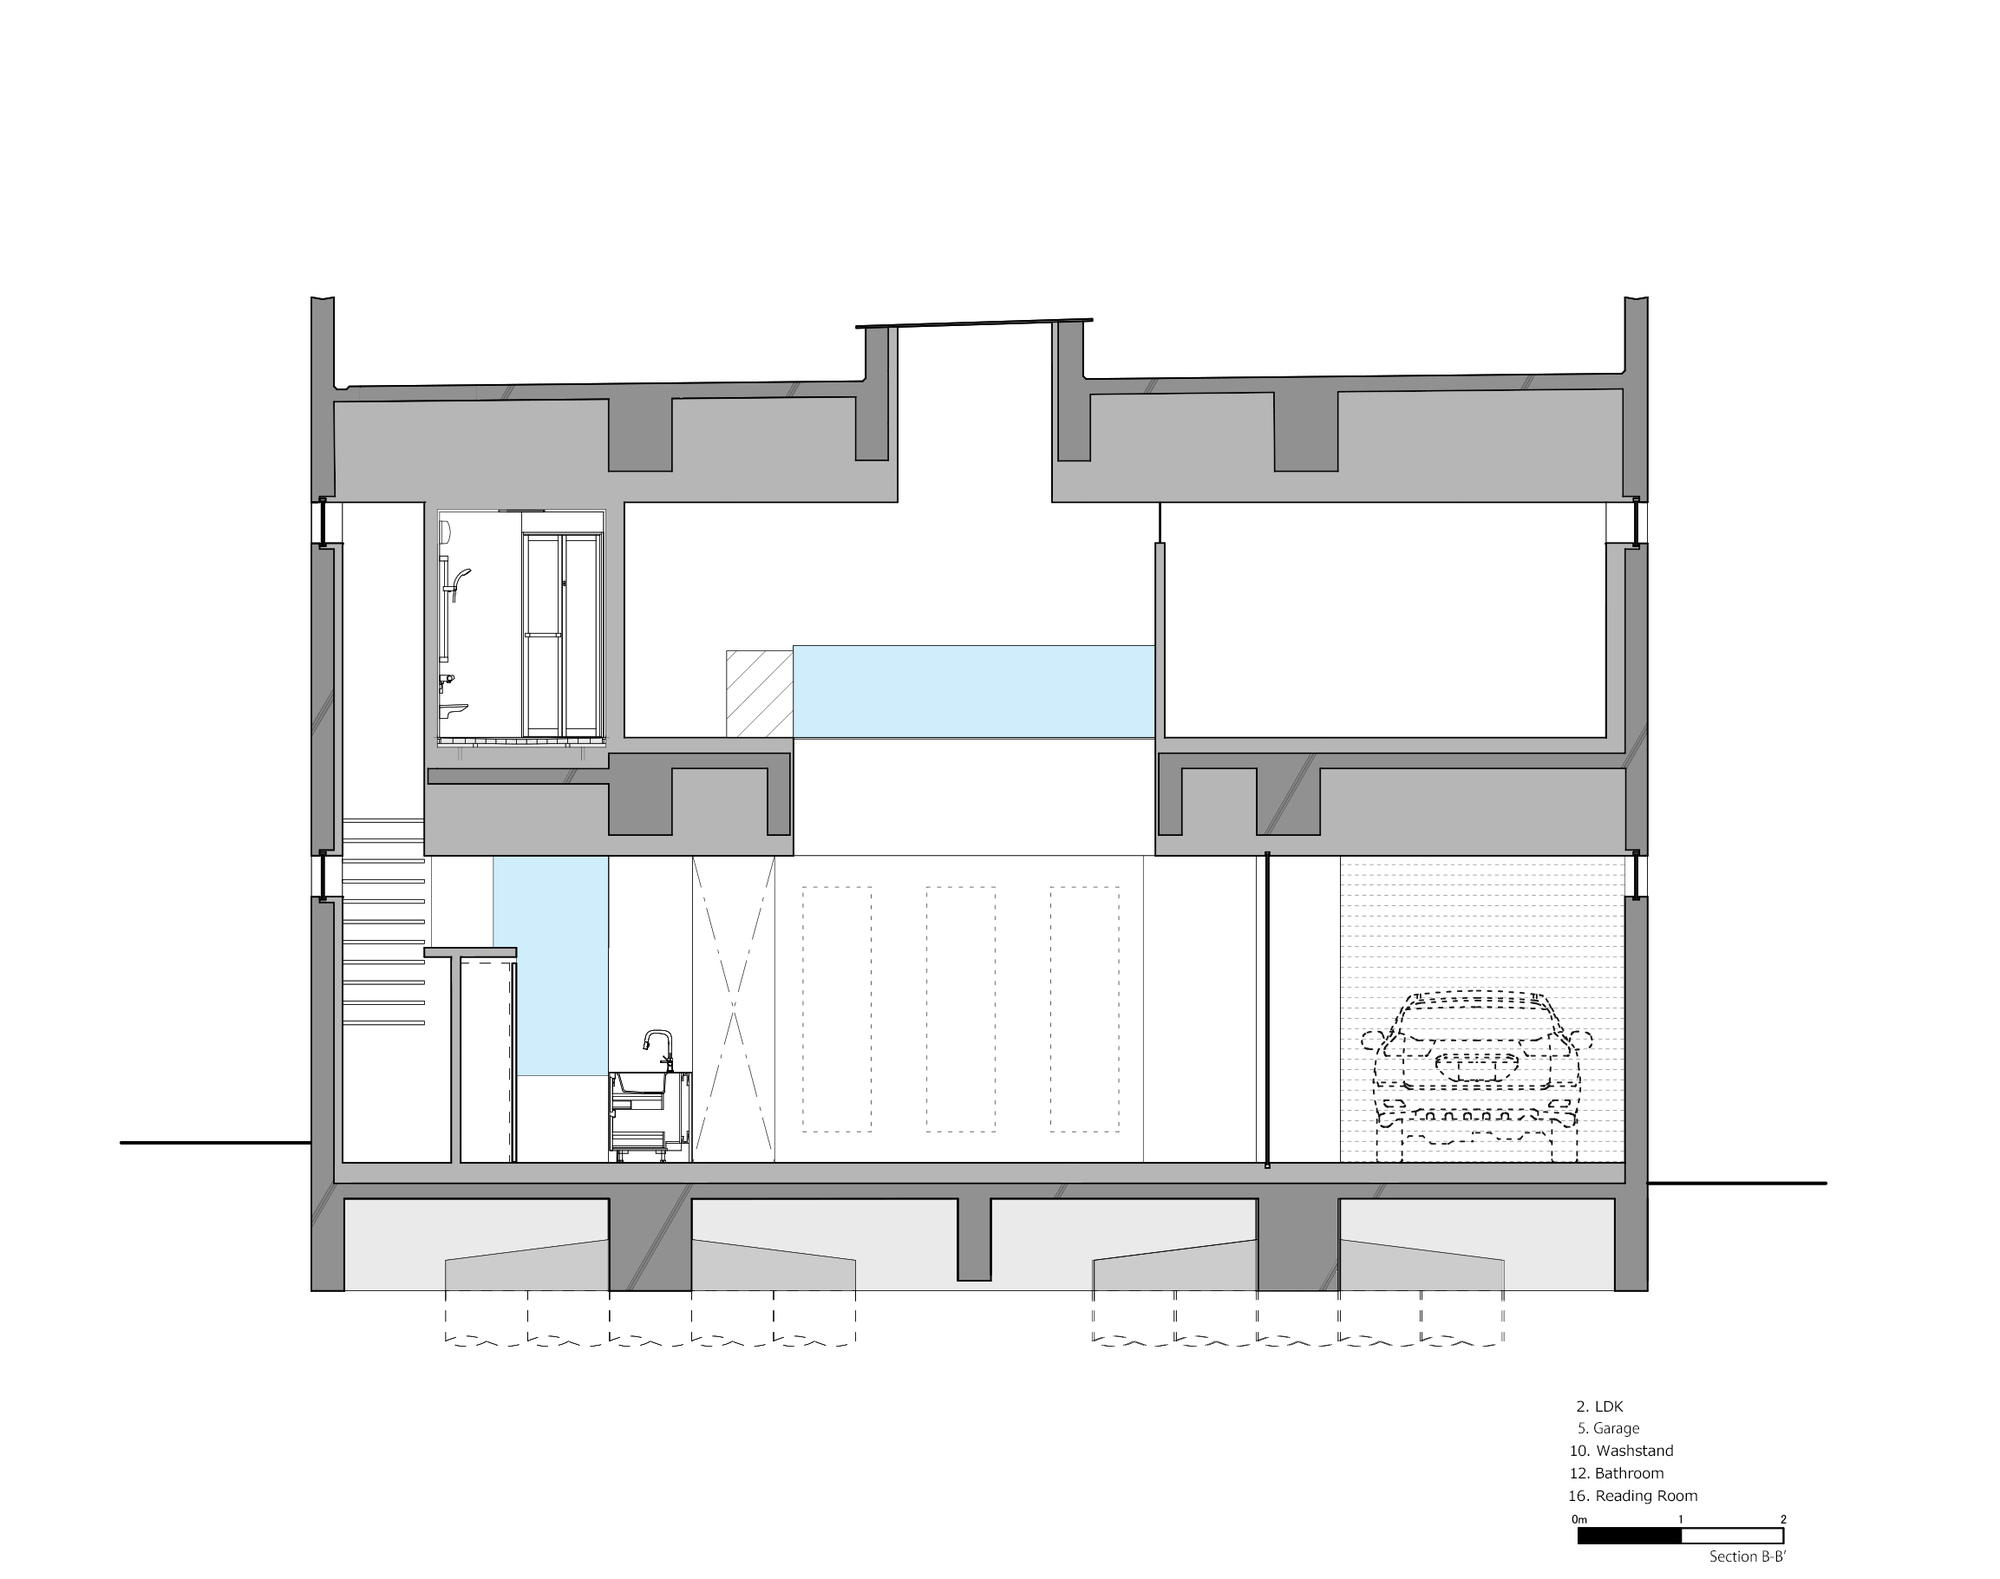 m9 _House_In_Takamatsu_Section02_B-B__ENG.jpg